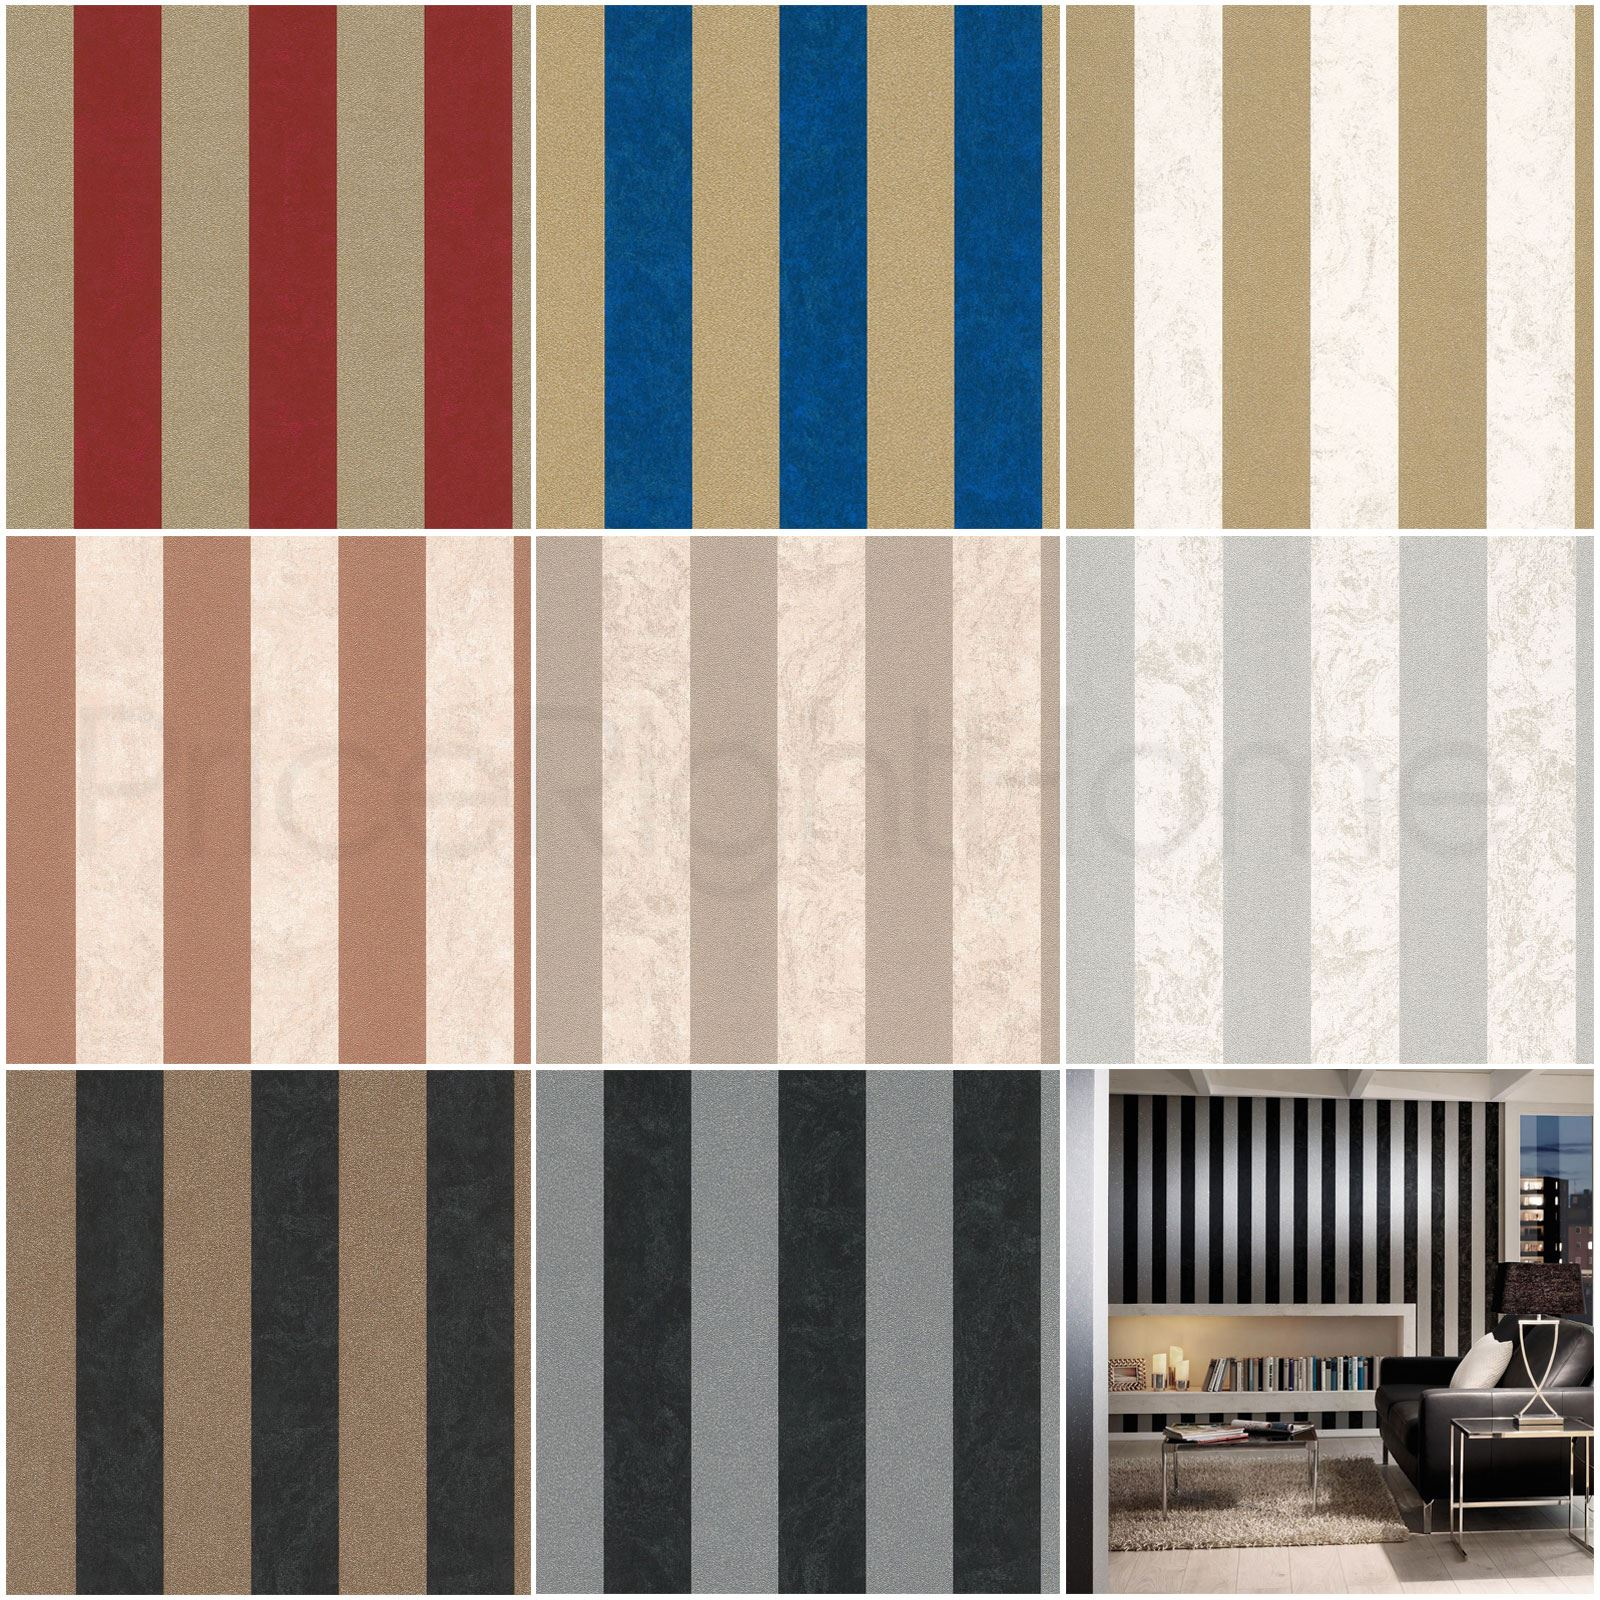 Details About P S Carat Glitter Stripe Wallpaper Copper Silver Gold Blue Black Red More